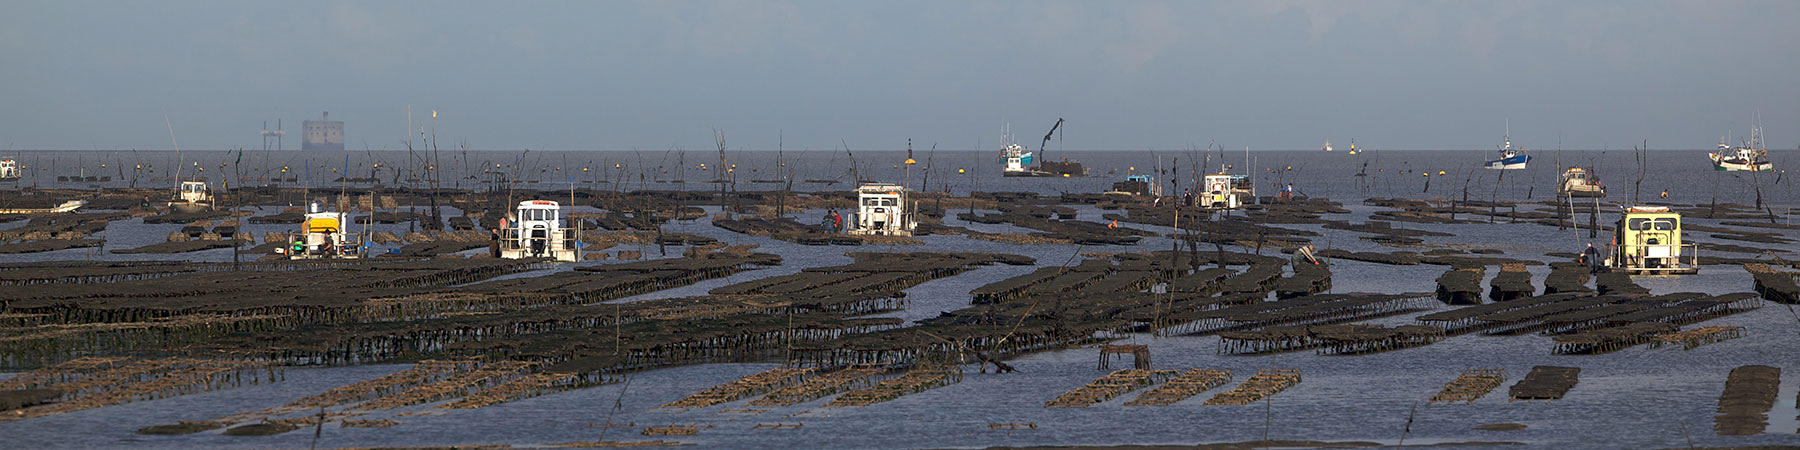 Oyster Farming - Photo Plisson